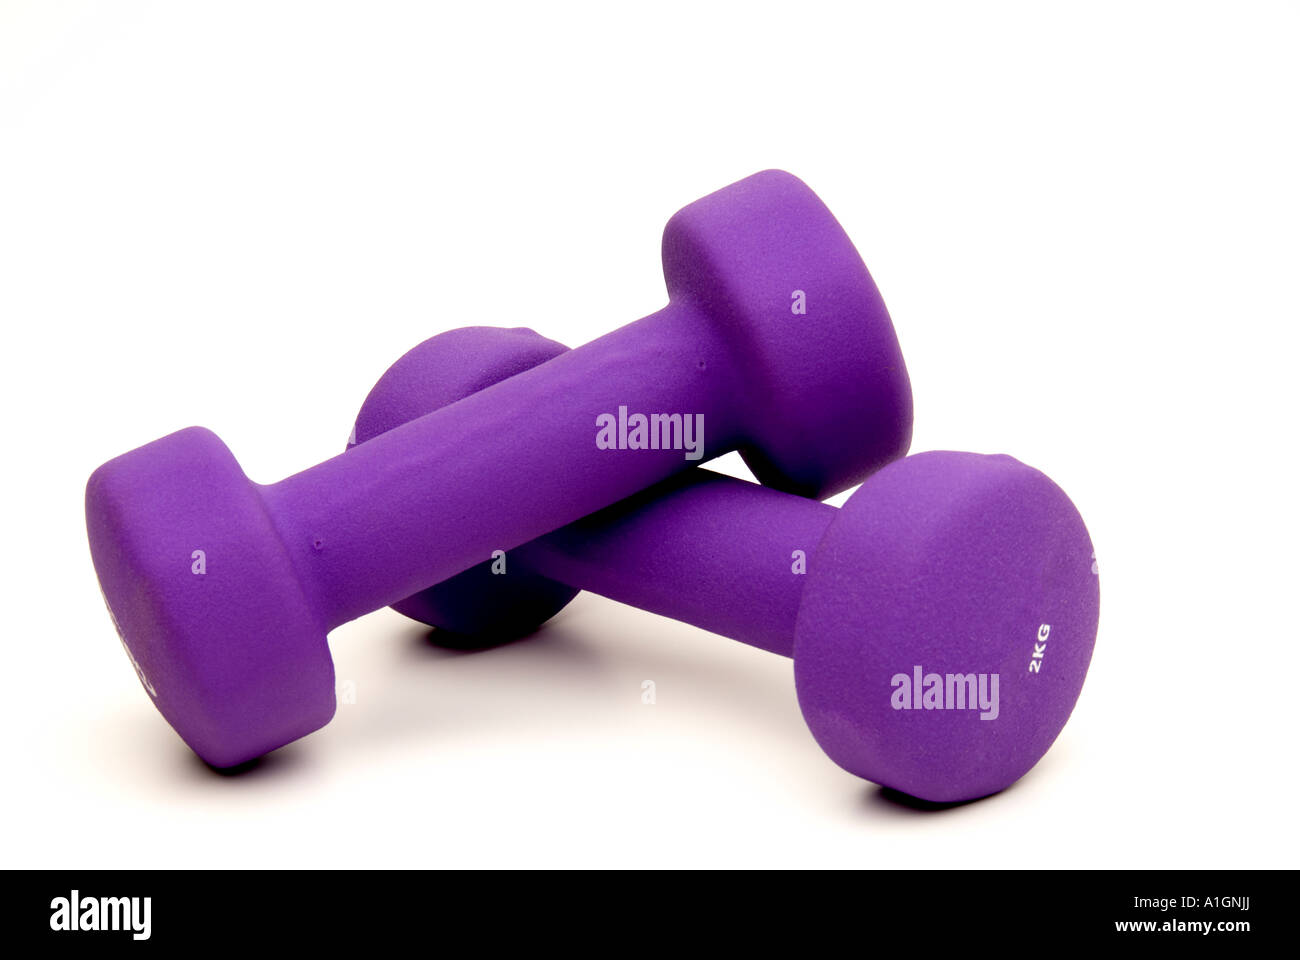 Foam covered exercising weights on white background. - Stock Image